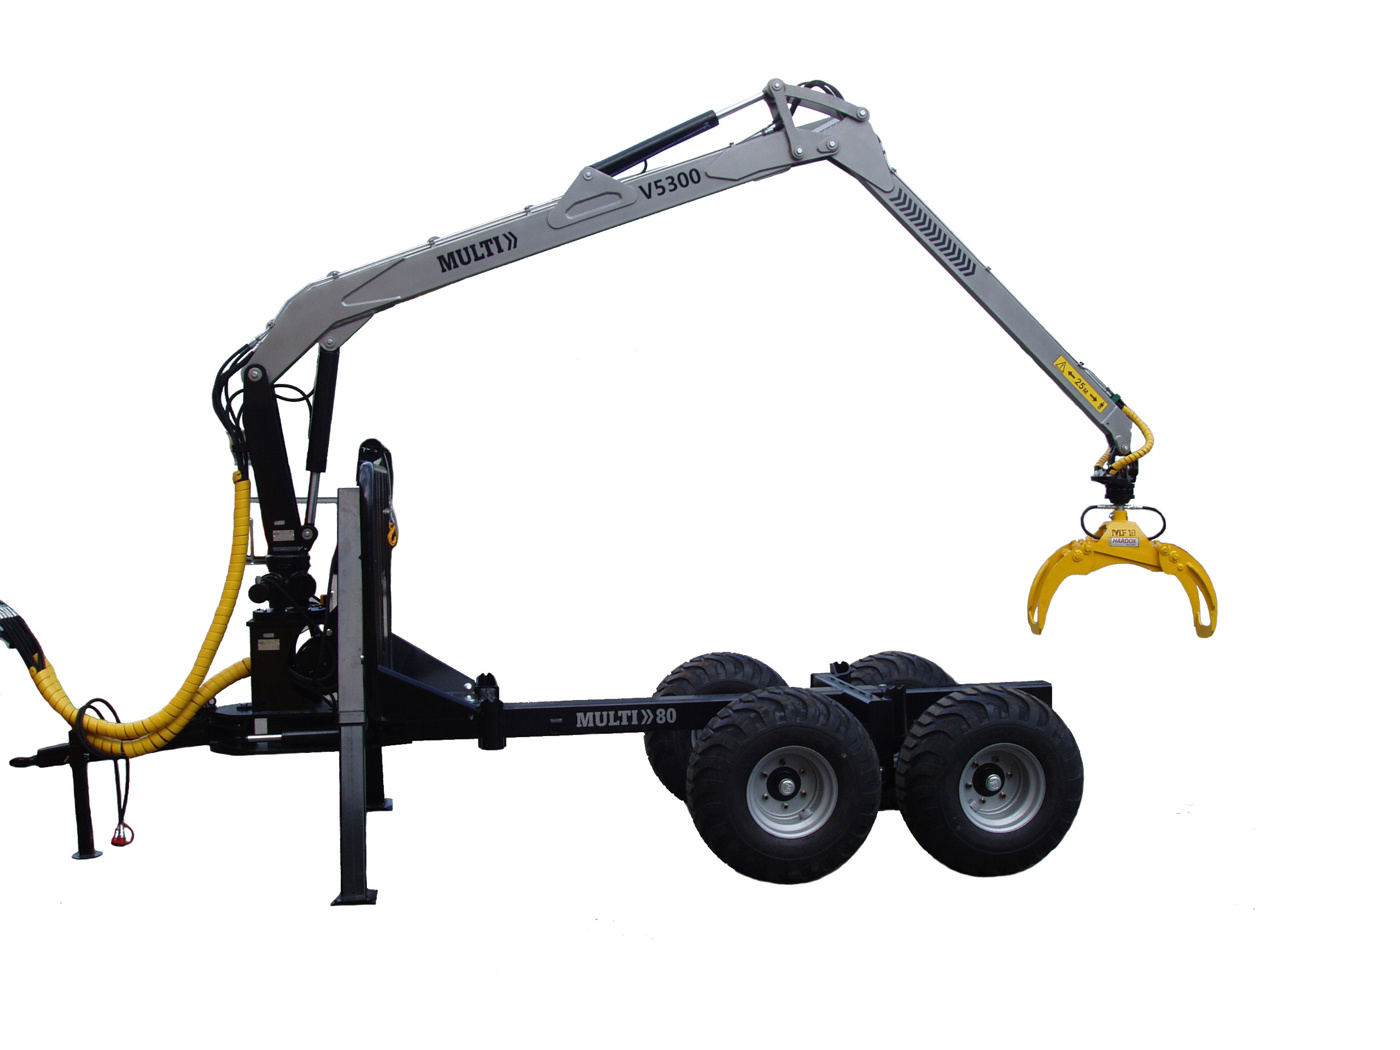 Knuckle Boom Cranes Manufacturers : Multiforest knuckle boom cranes